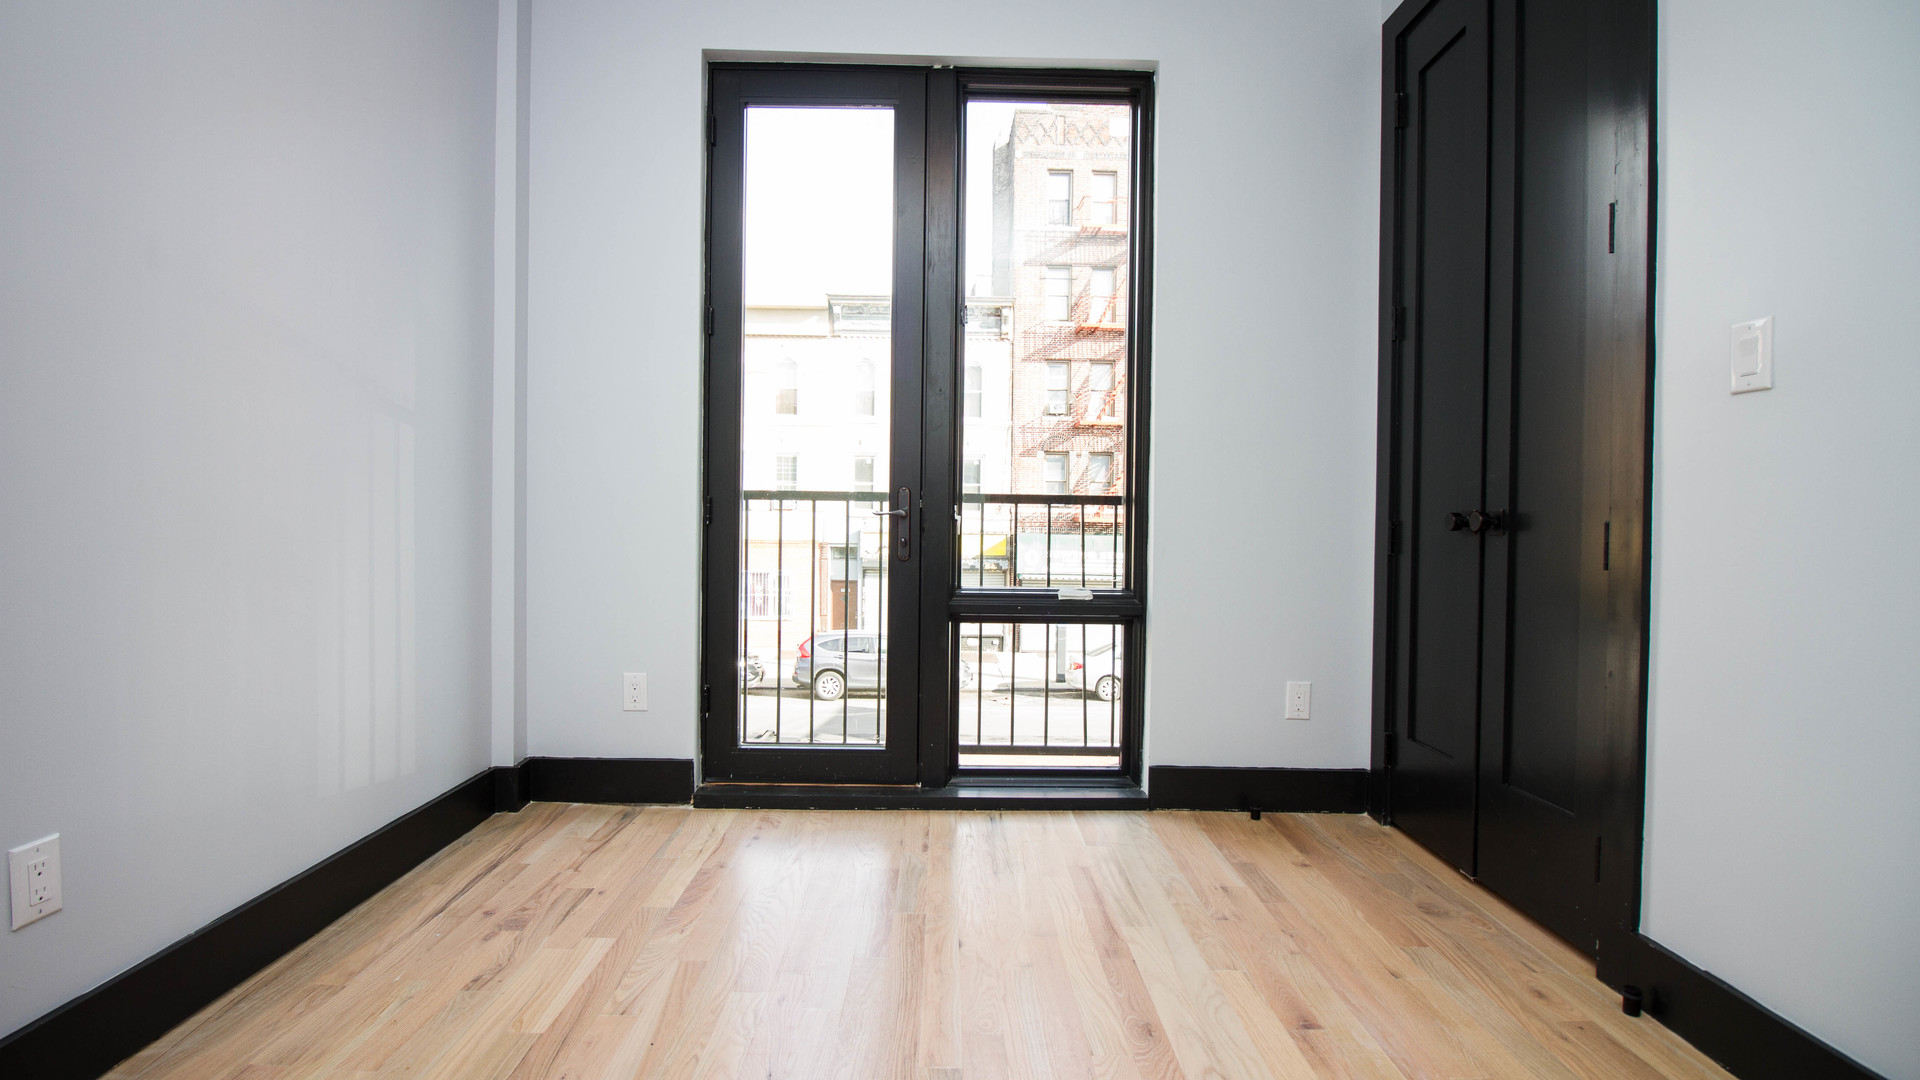 022 1544 nostrand ave 2f %2815 of 21%29